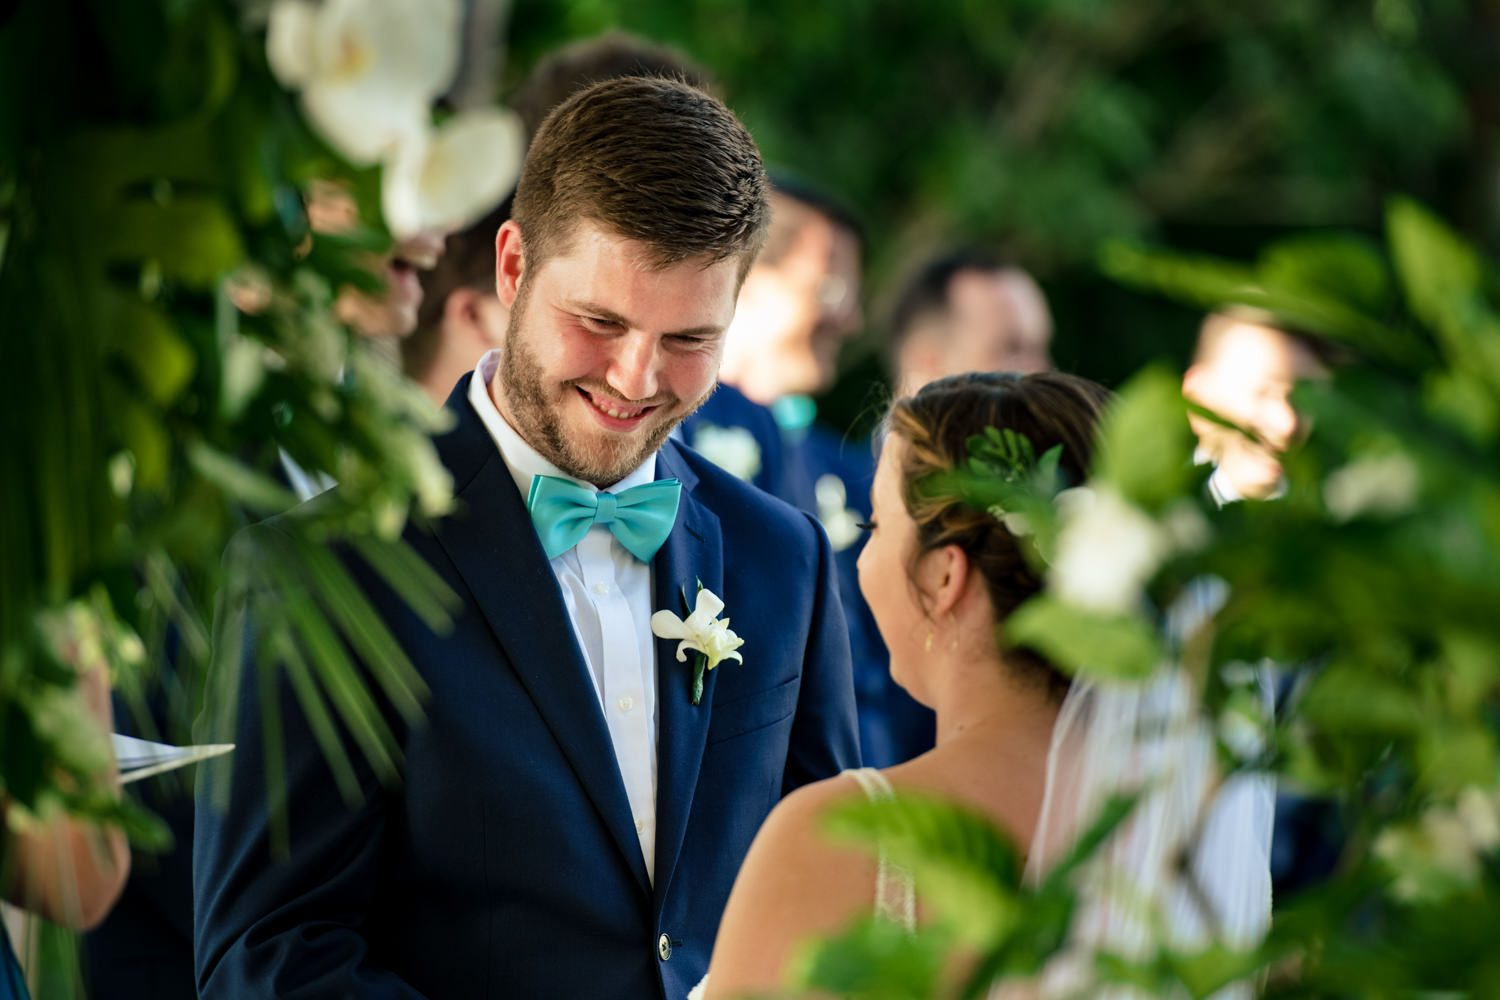 Groom smiling at his bride while exchanging vows